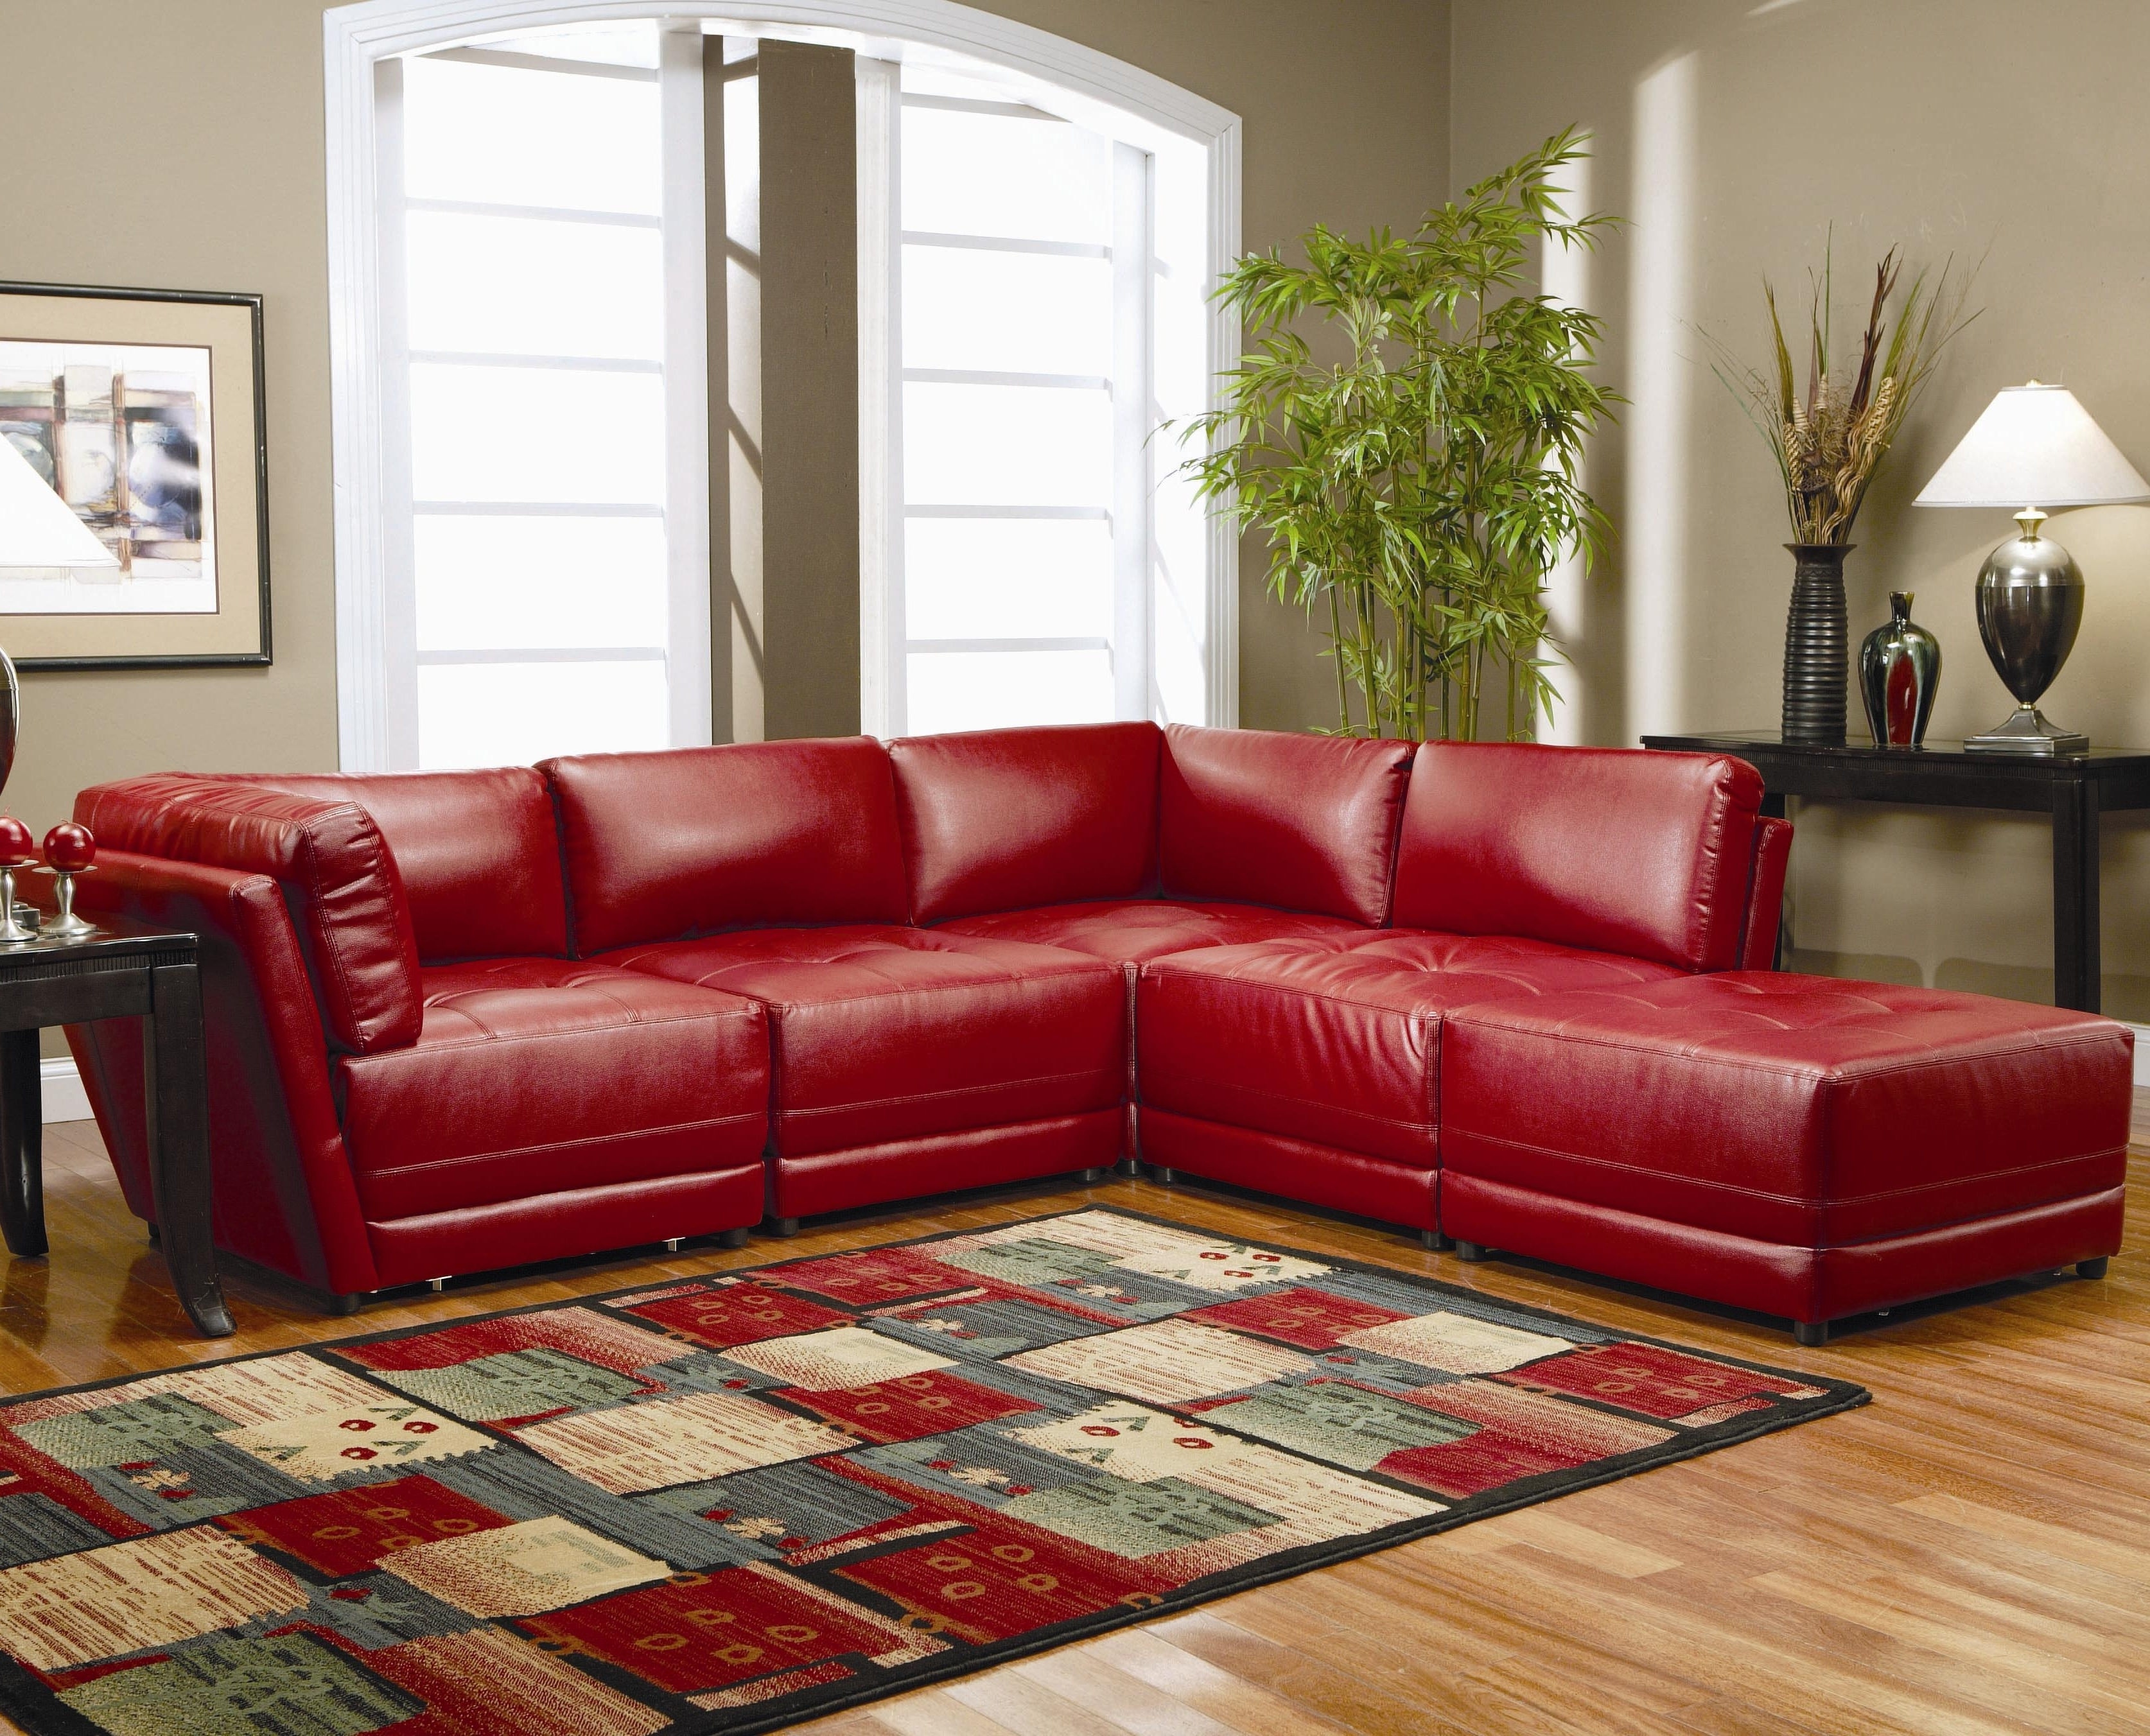 Latest Red Leather Sectionals With Chaise Pertaining To Warm Red Leather Sectional L Shaped Sofa Design Ideas For Living (View 5 of 20)